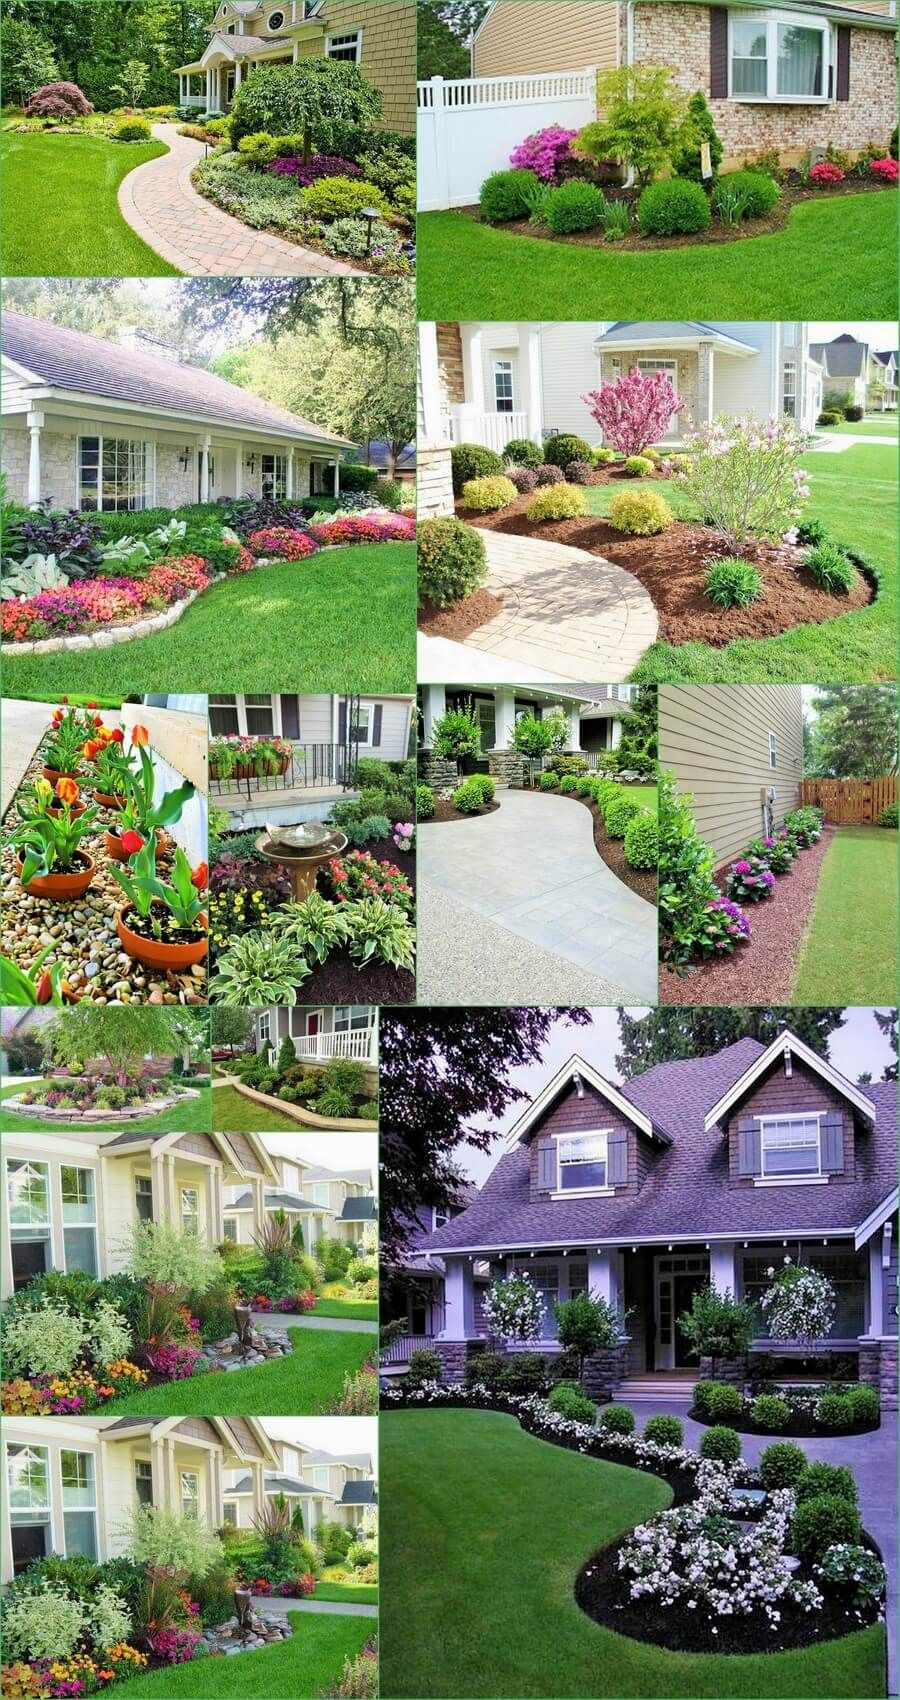 New home garden ideas  Beautiful Home Gardening Ideas For The Front And The Backyard